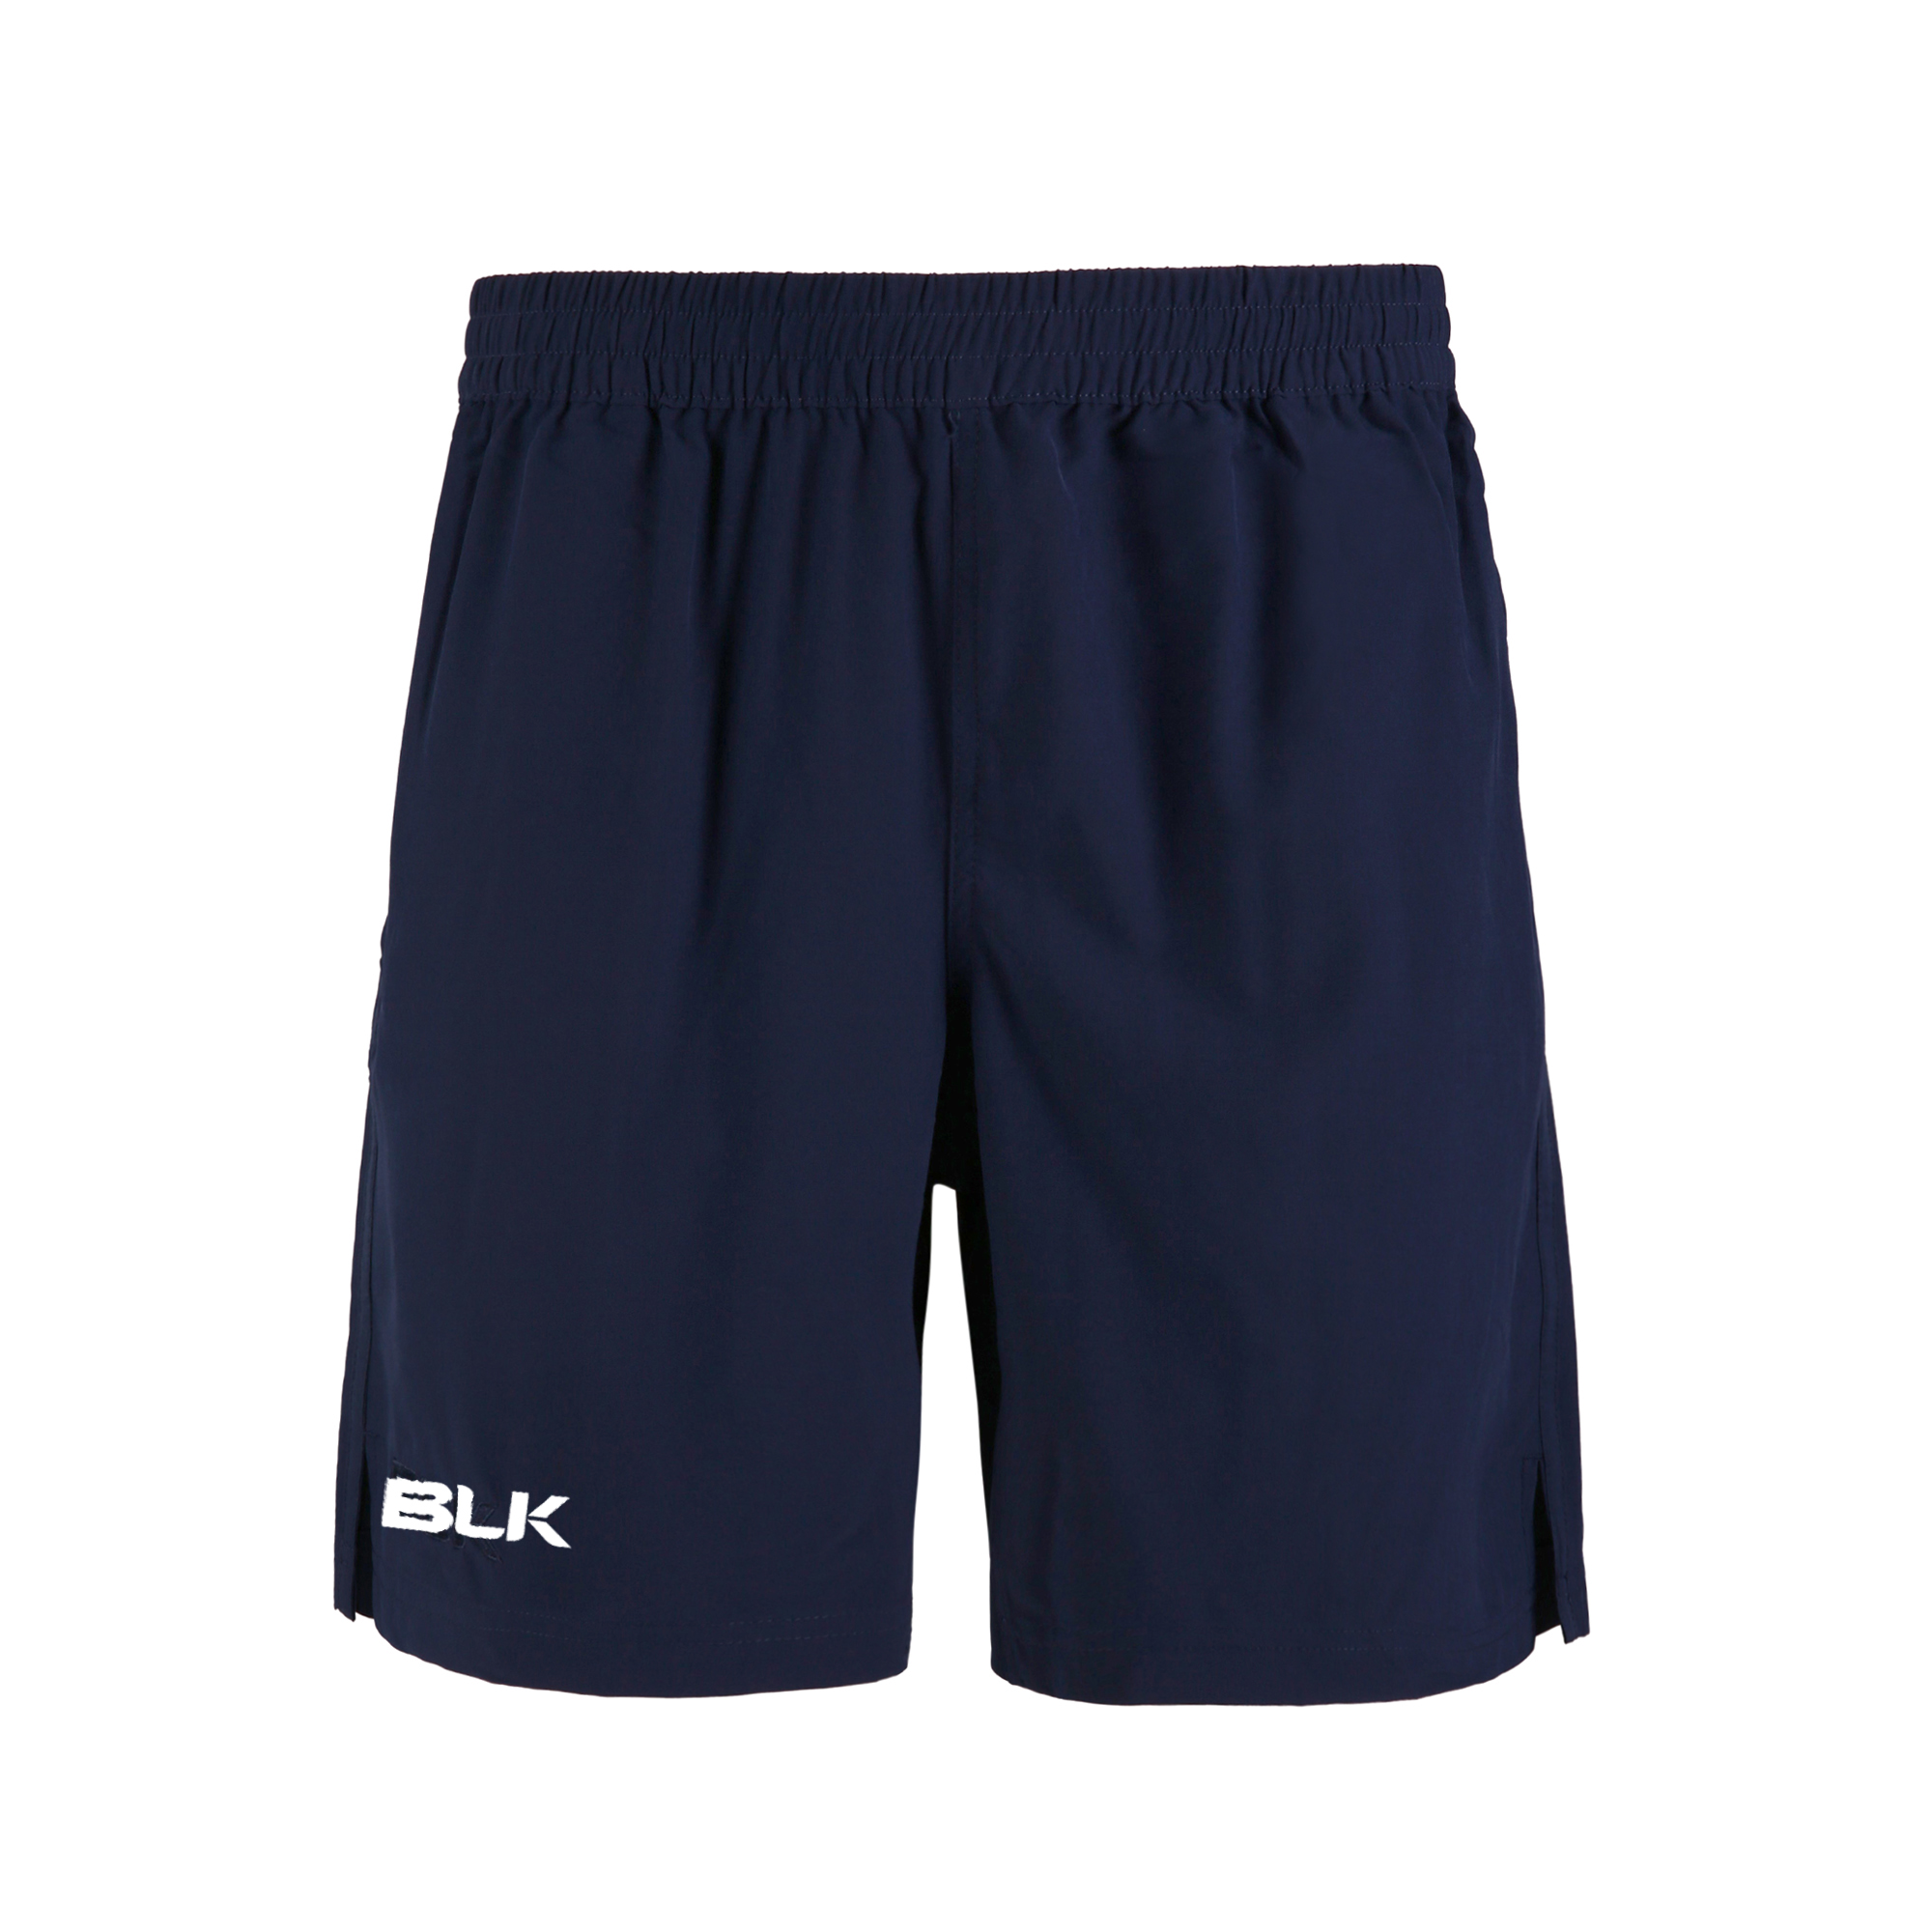 BLK TEK V GYM SHORT - NAVY